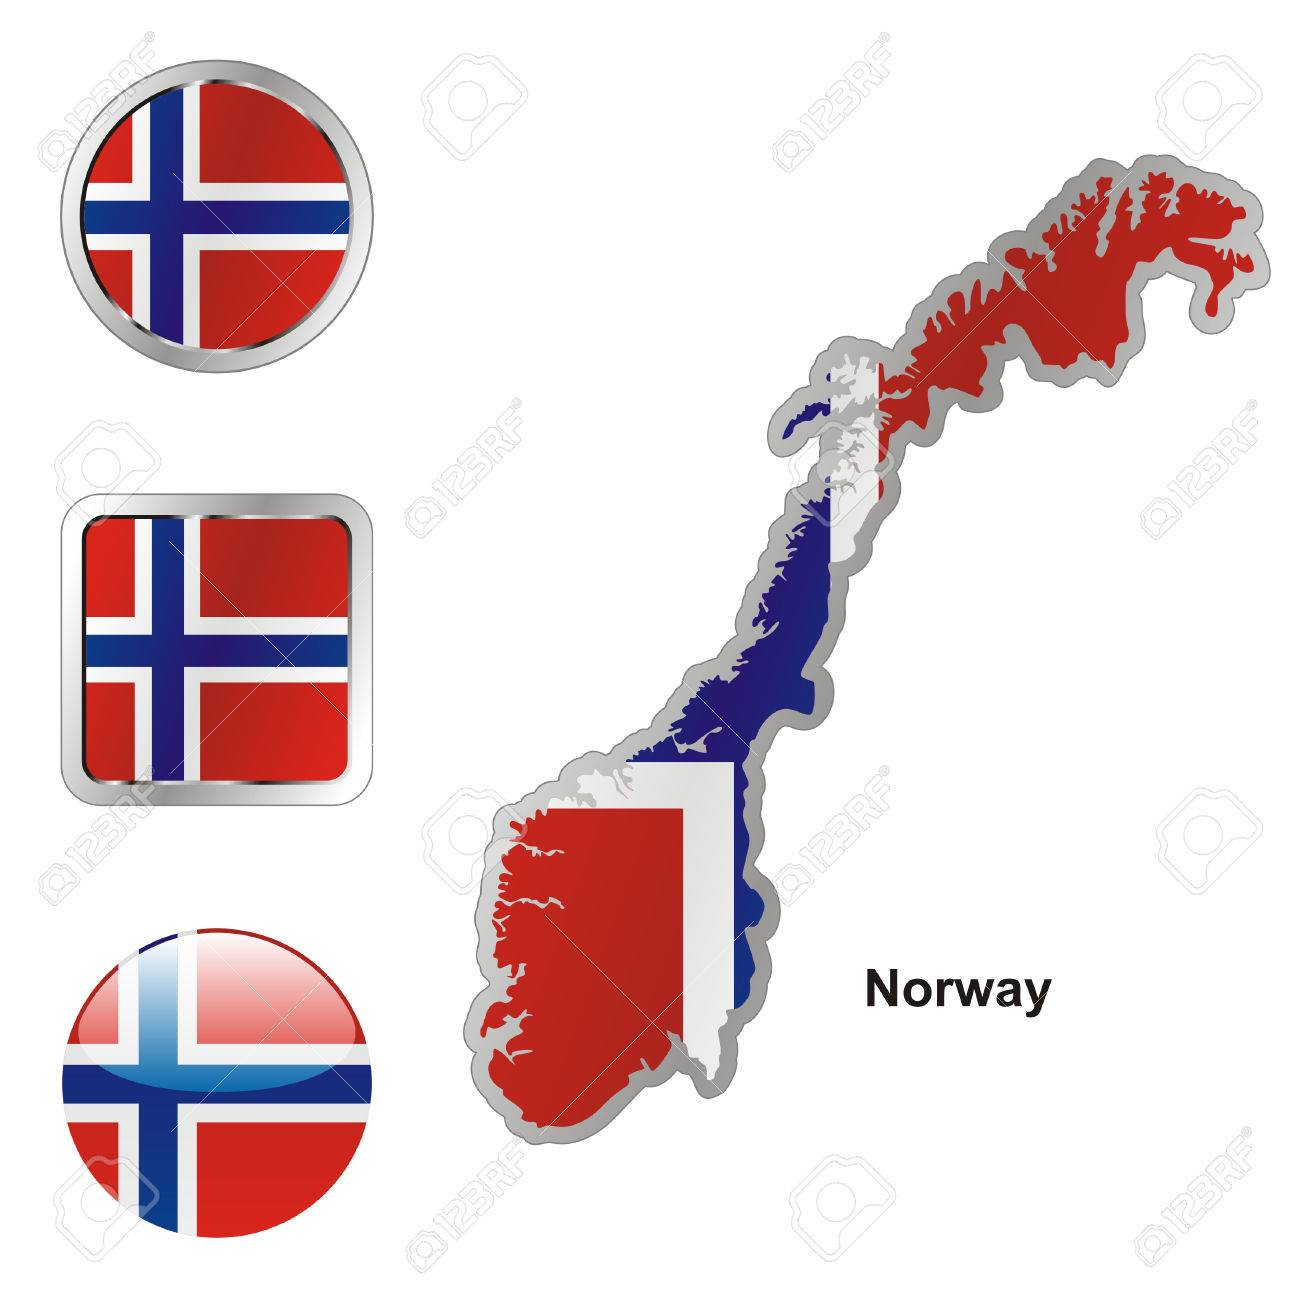 Fully Editable Flag Of Norway In Map And Web Buttons Shapes - Norway map and flag